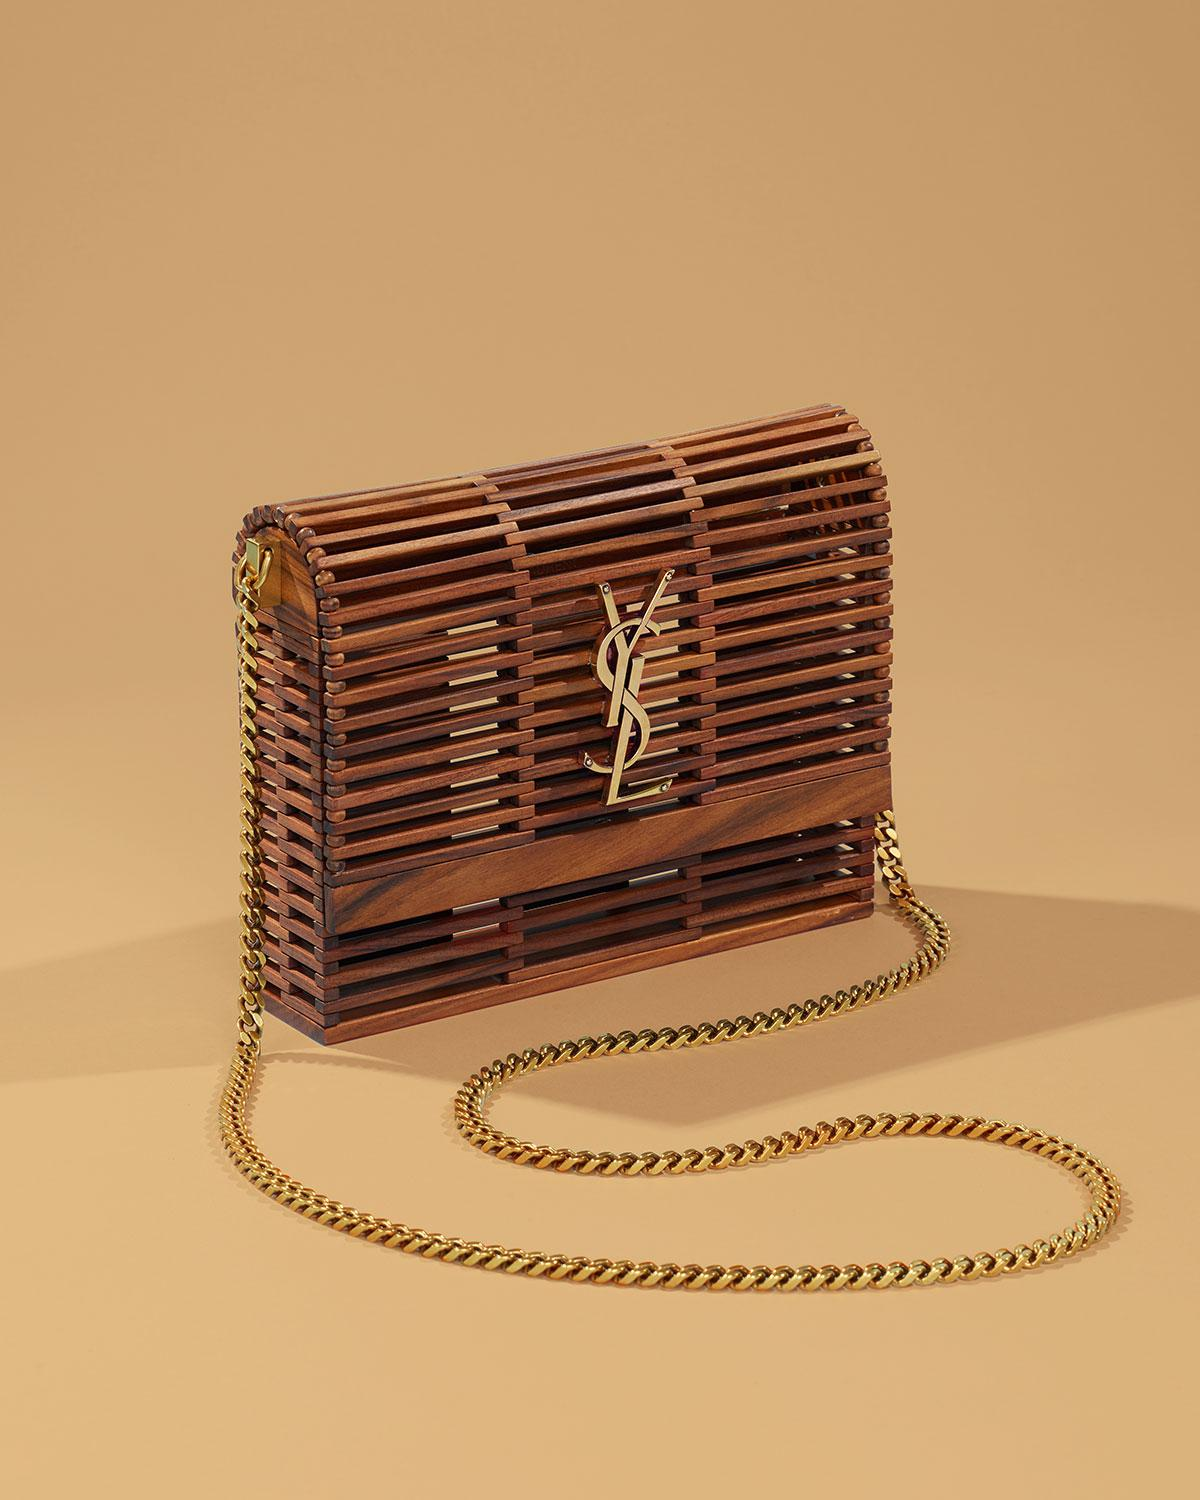 b773ad9117 Lyst - Saint Laurent Small Kate Wooden Weave Box Bag in Brown